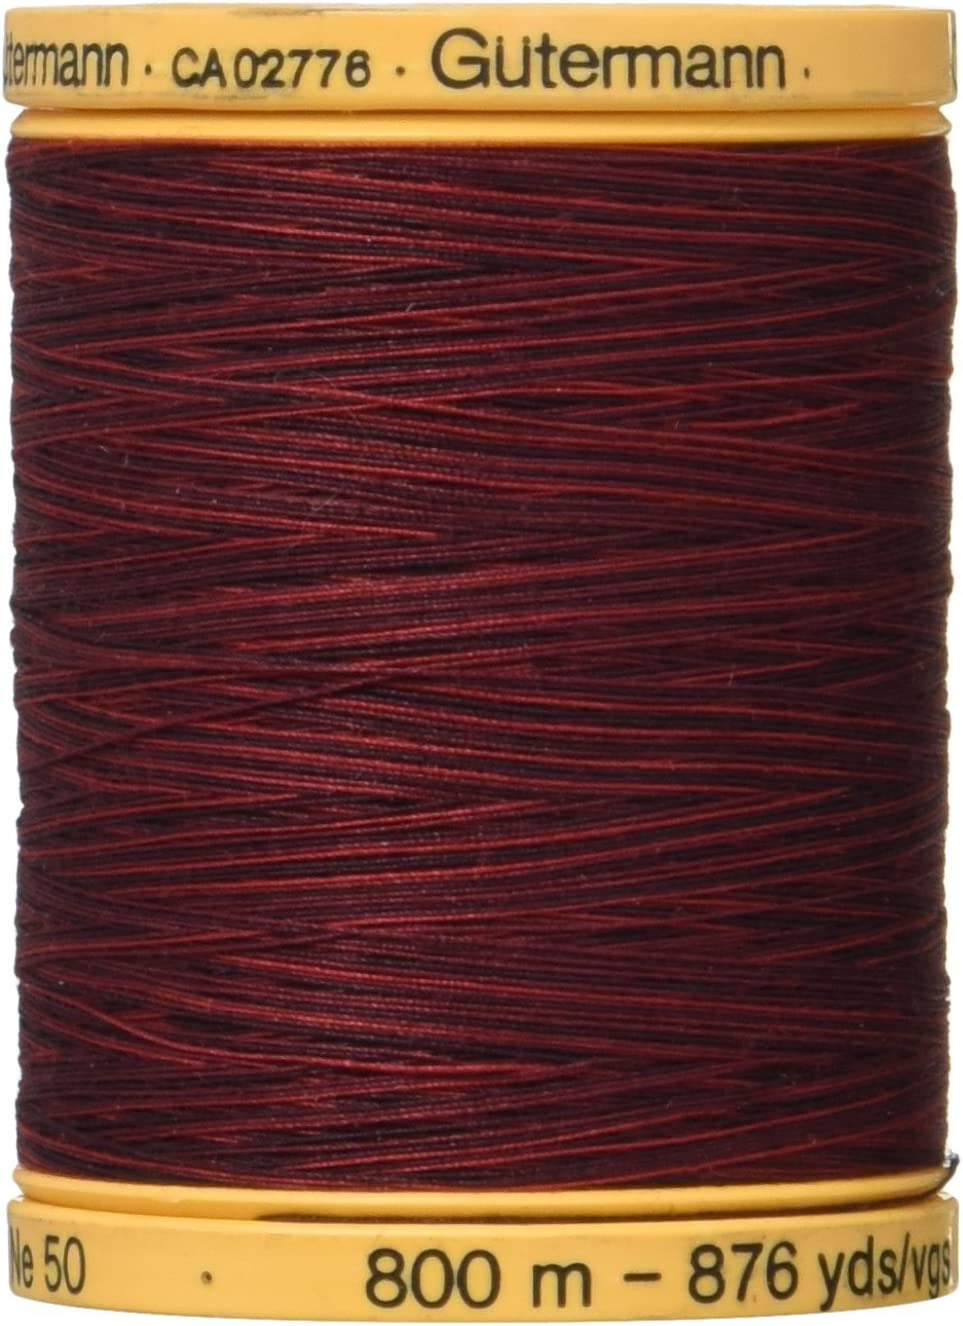 876yds Gutermann 100/% Cotton Color #9973 Ruby Red Variety Thread 800m